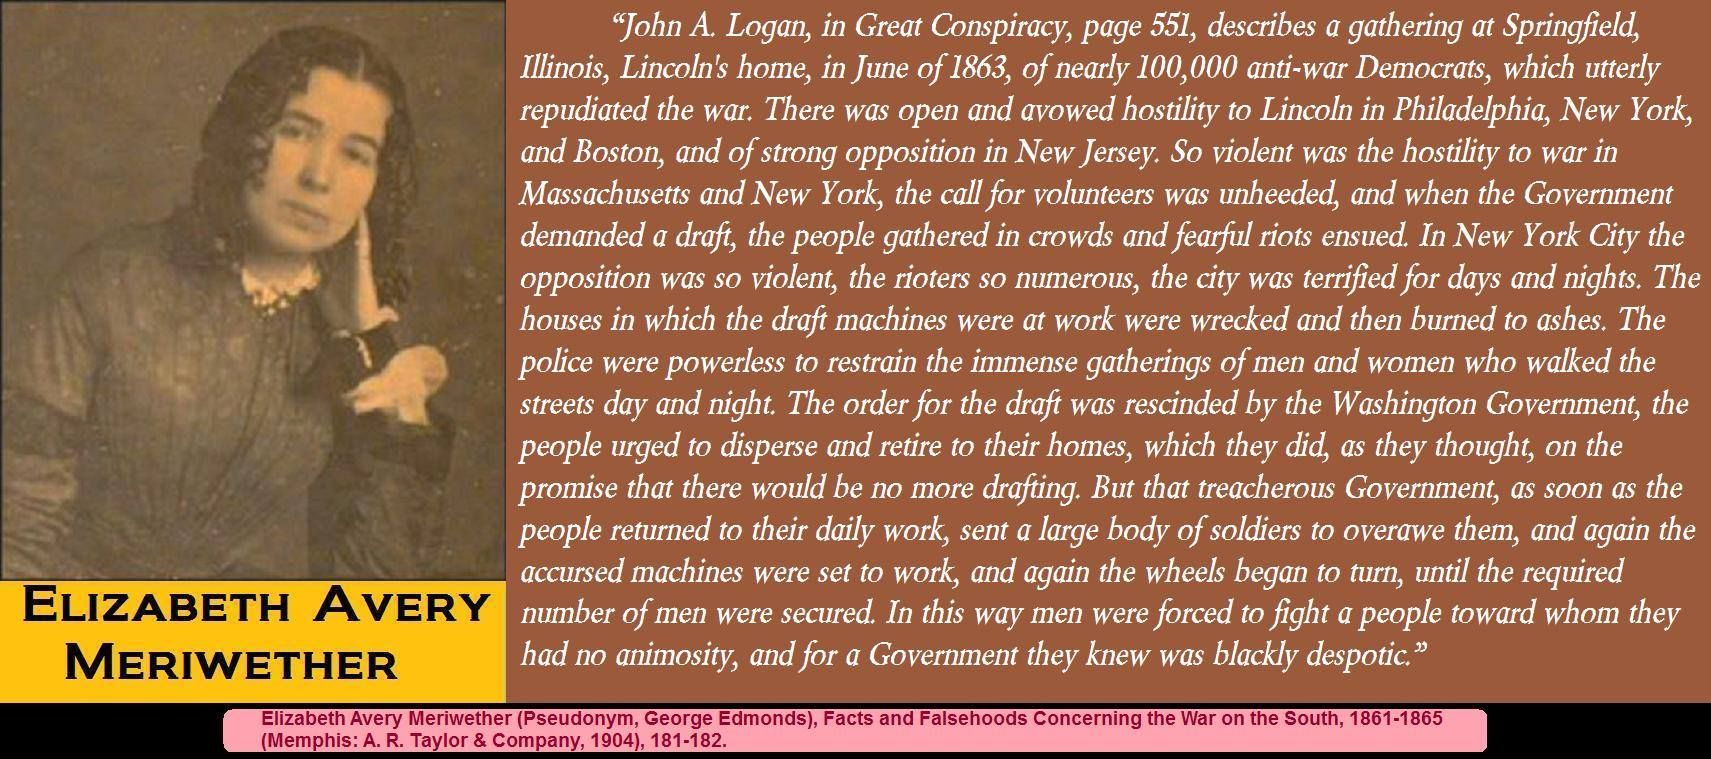 BEHOLD! MORE OF LINCOLN'S TYRANNY REVEALED! THE TYRANNICAL KING! LOVED AND APPROVED BY COMMUNISTS AT THE TIME!